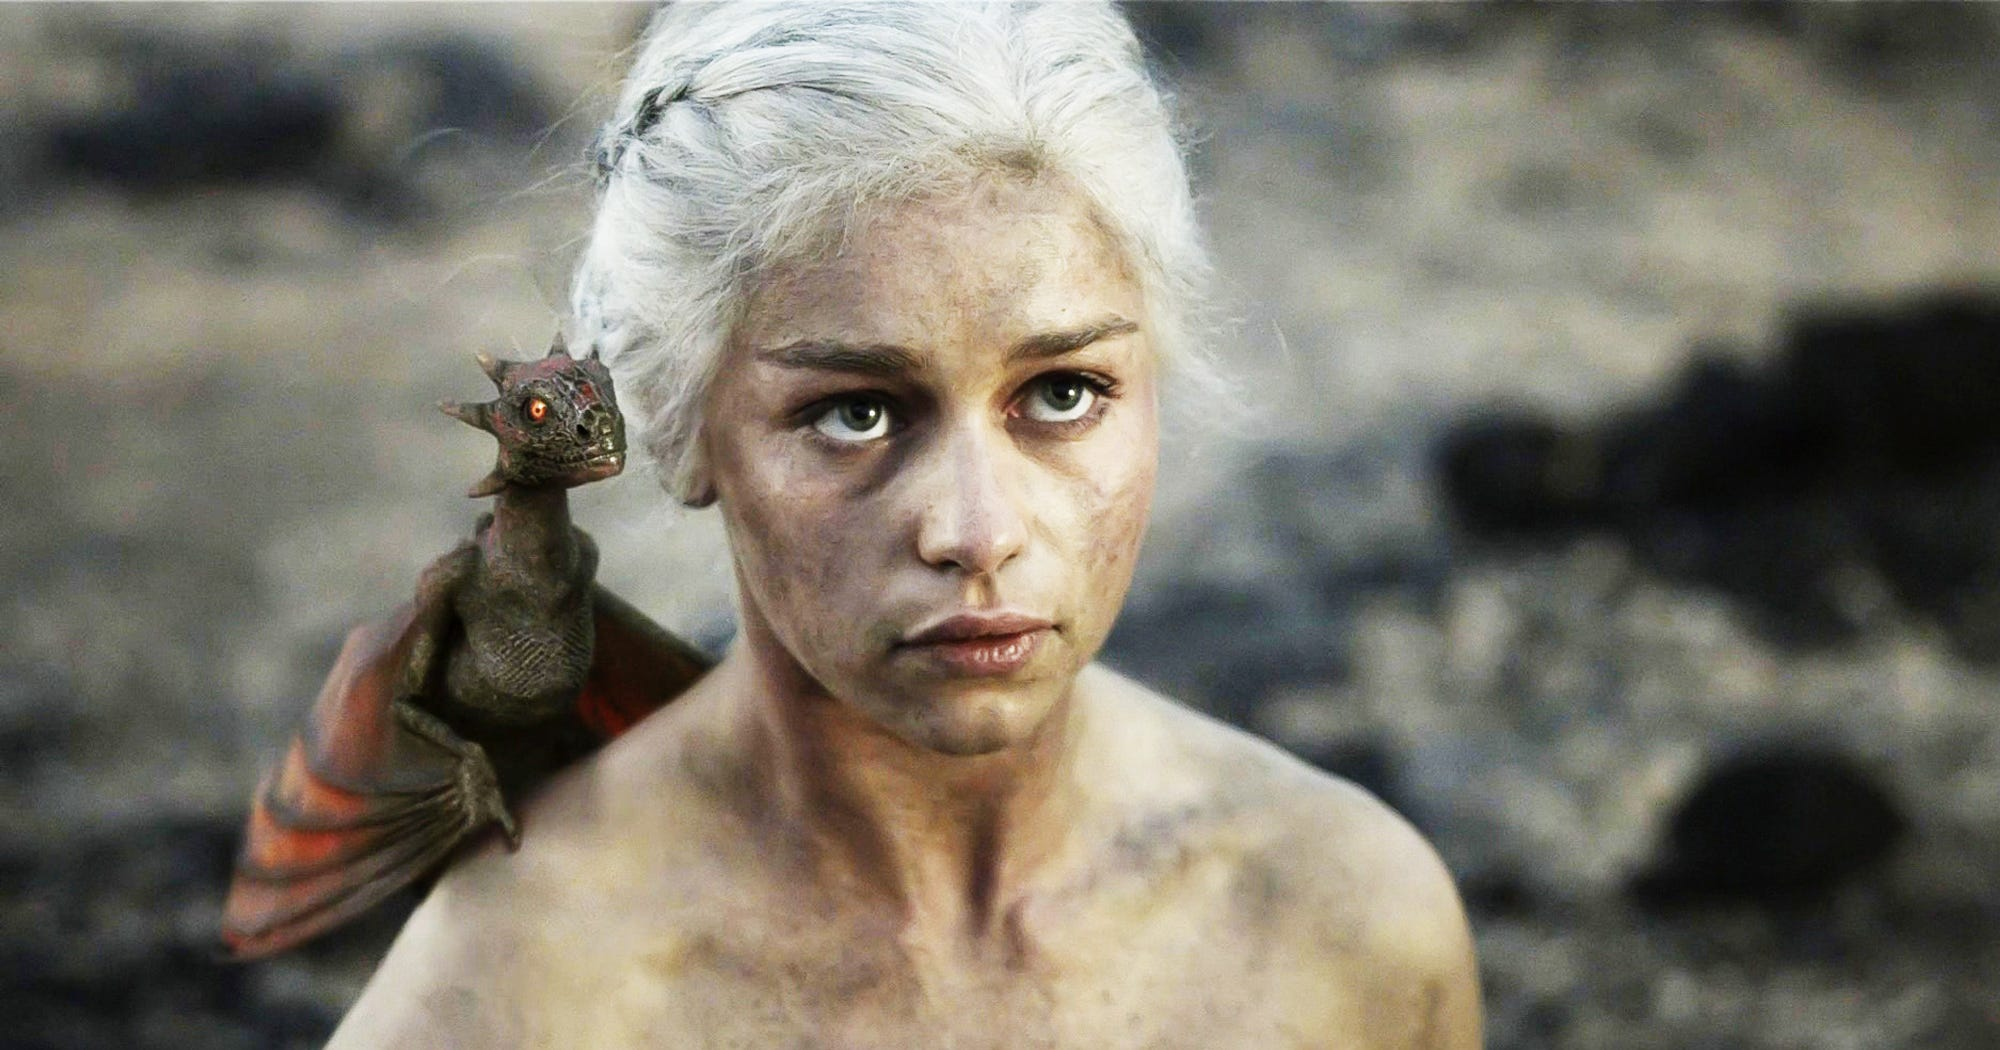 The 30 Most WTF Moments From 5 Years Of Game Of Thrones